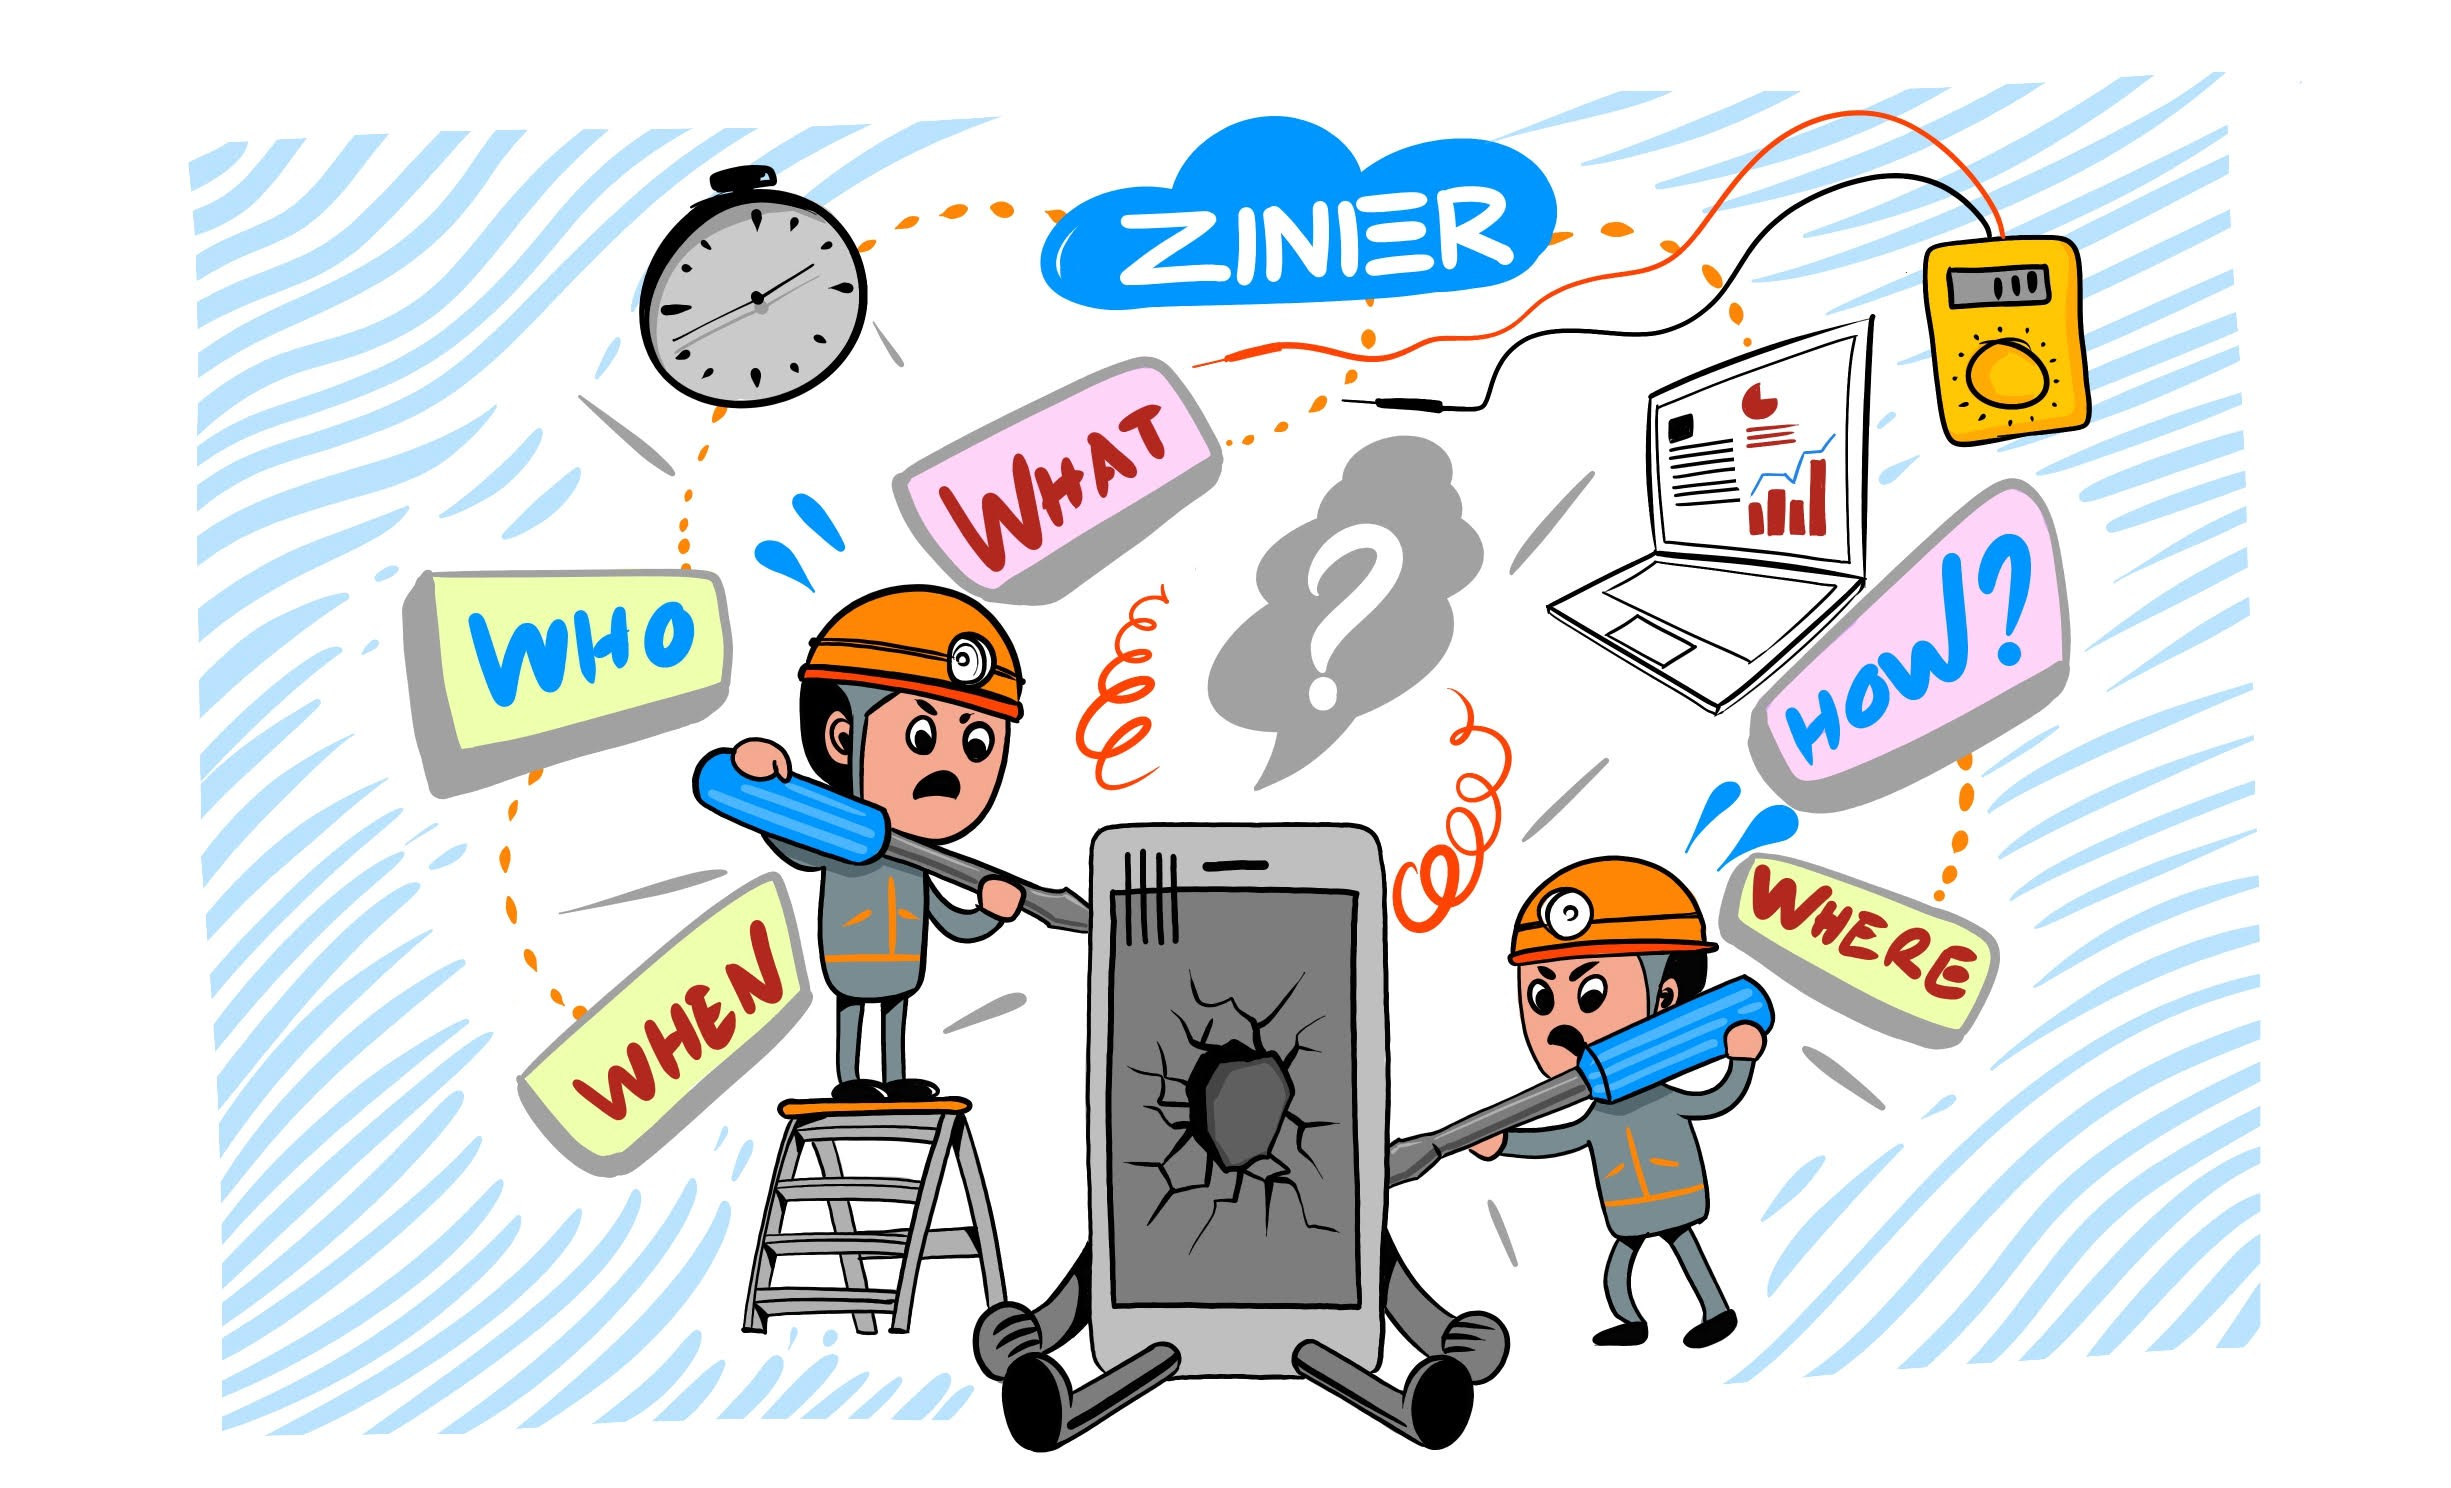 Zinier addresses the next generation of mobile workers